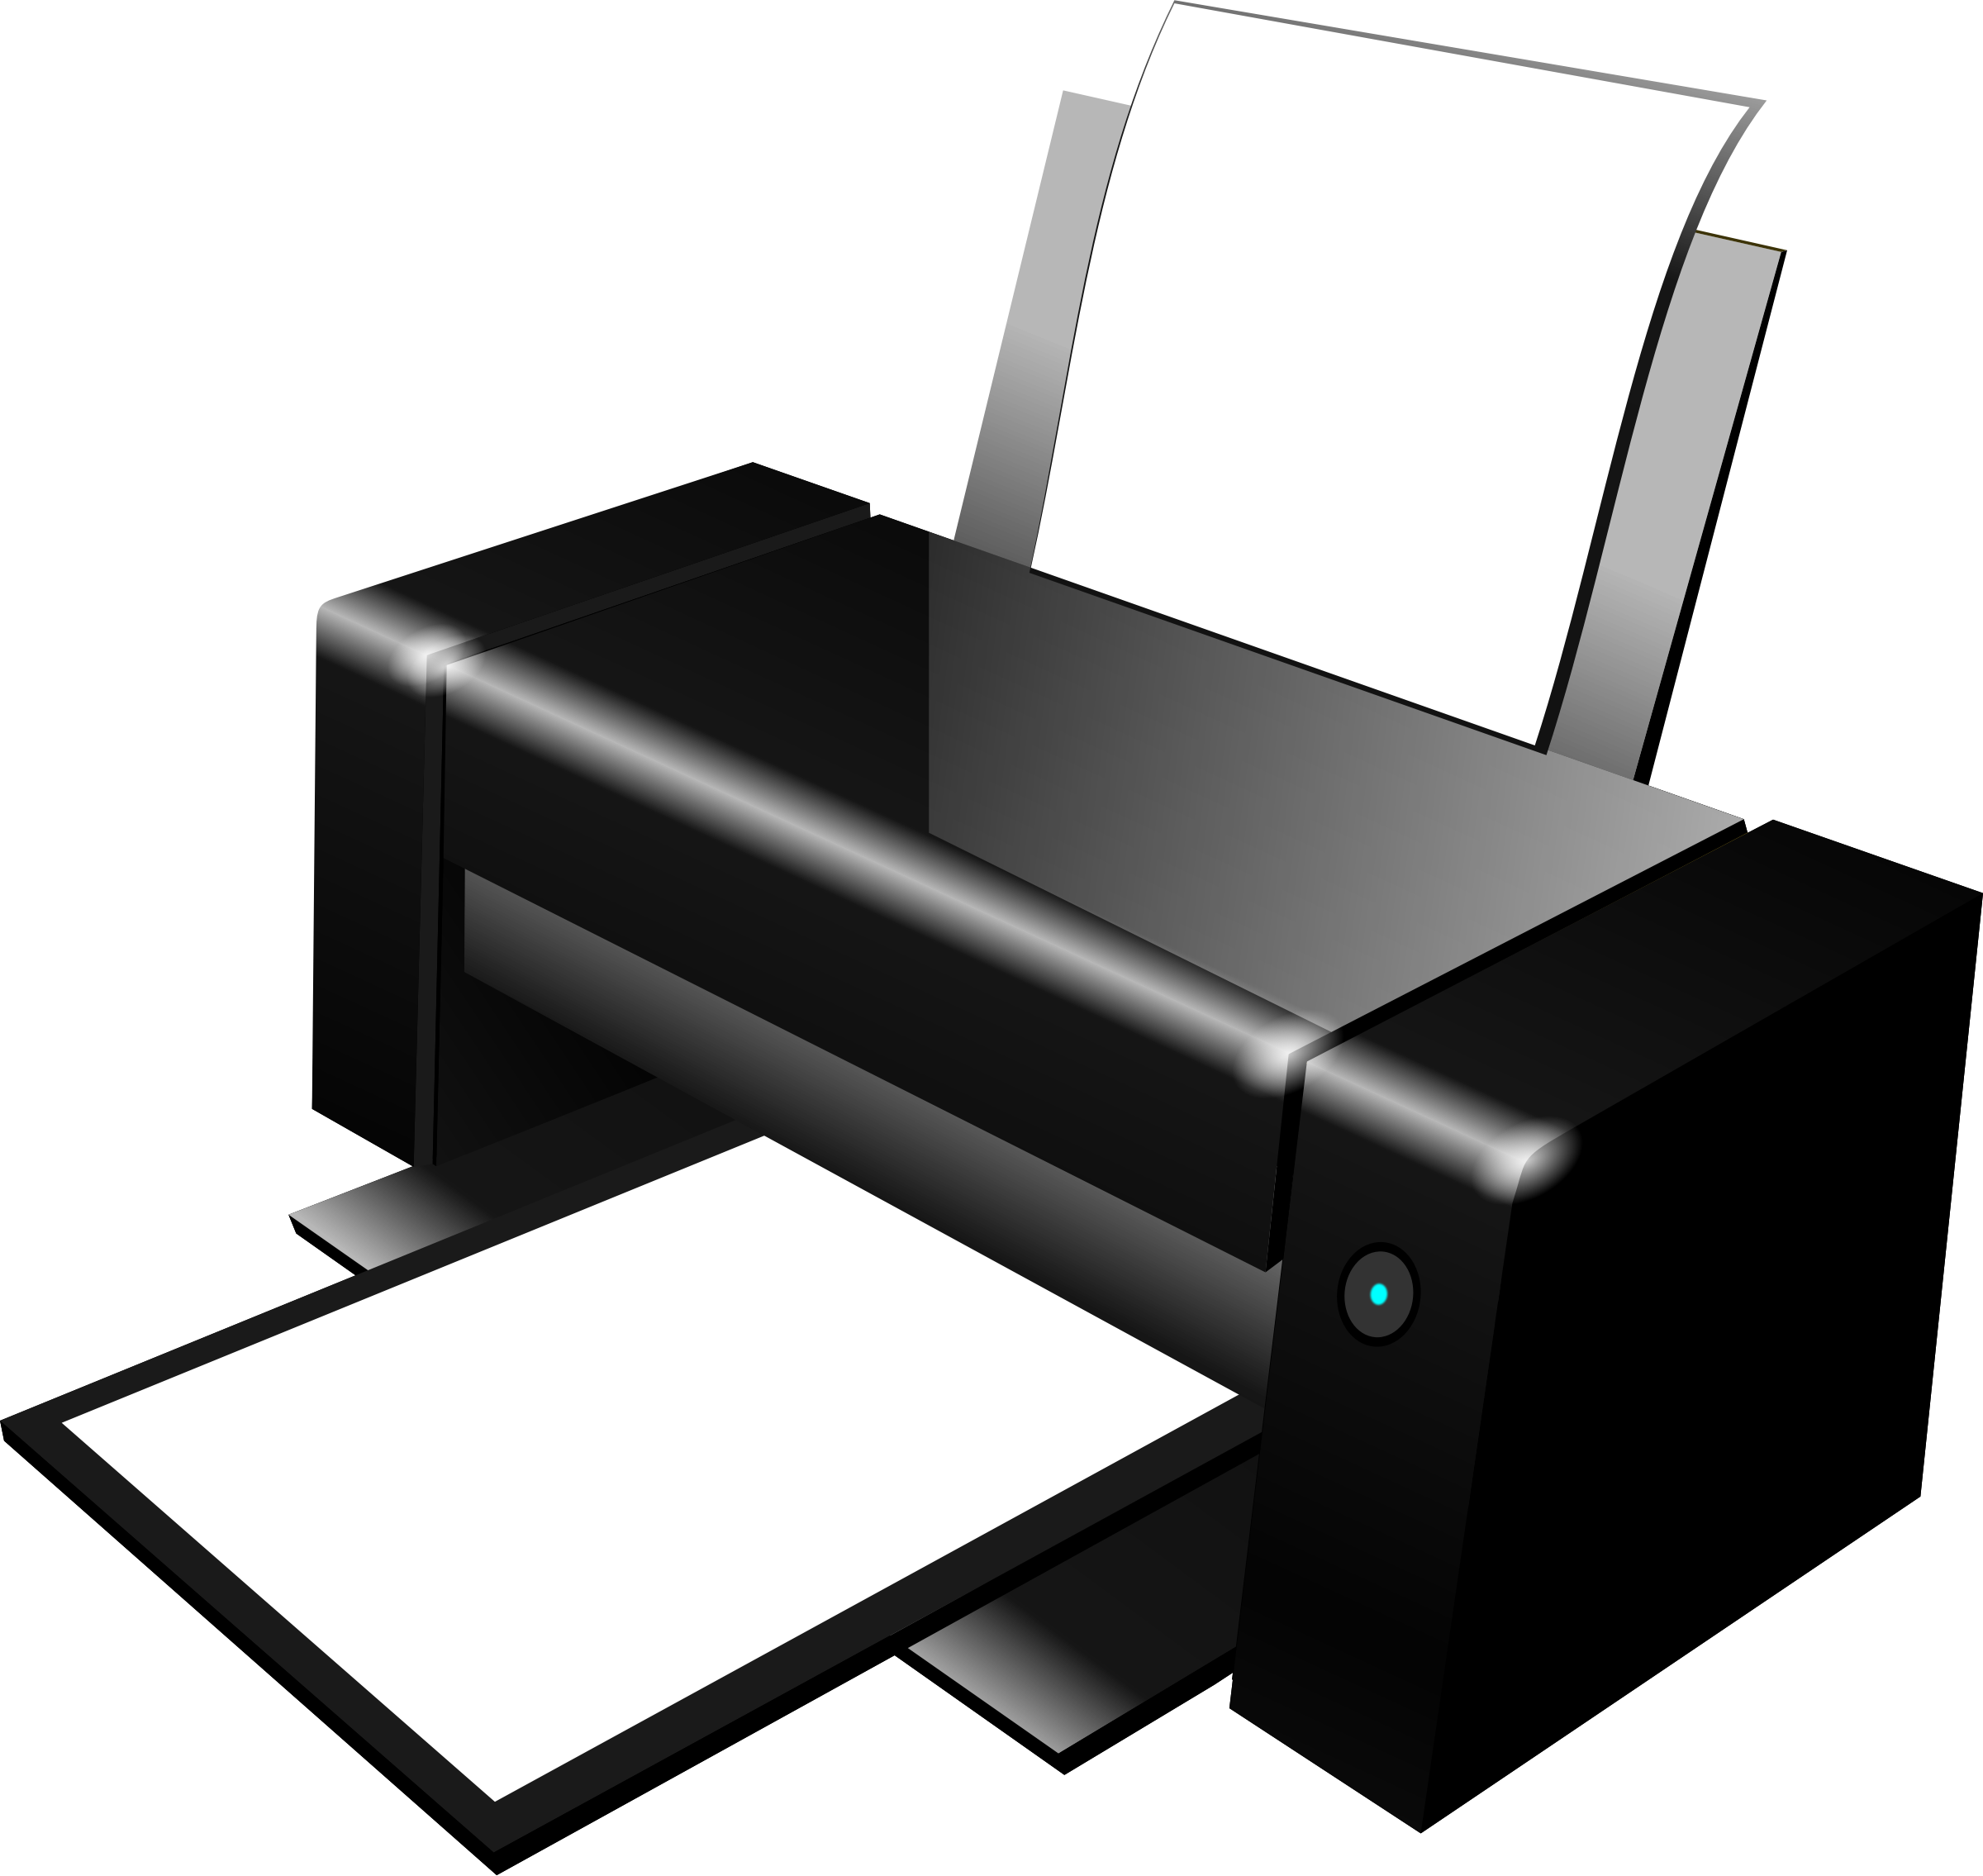 Computer clipart plotter. Printer png images free